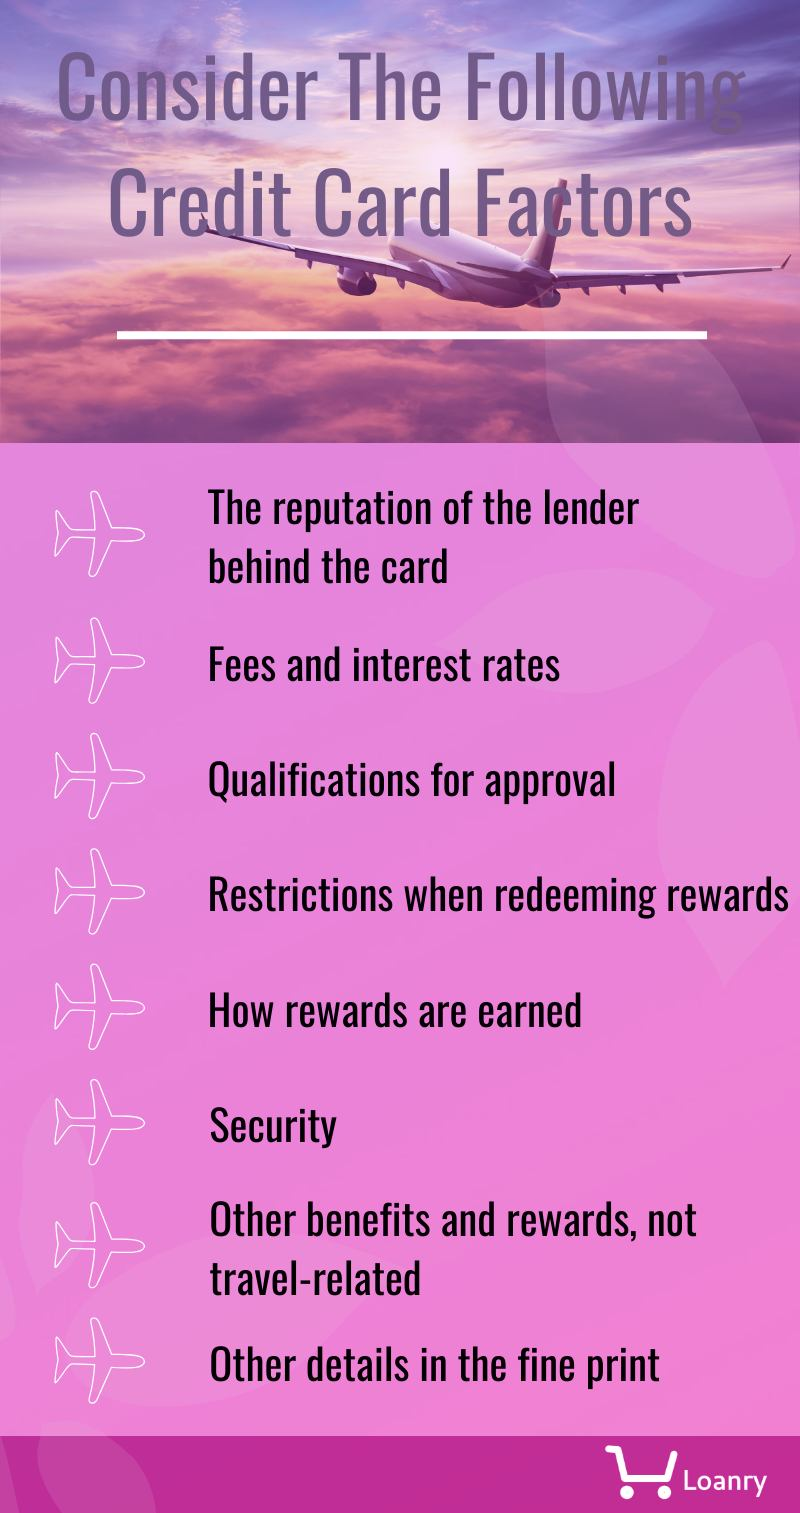 The airline credit card factors to consider